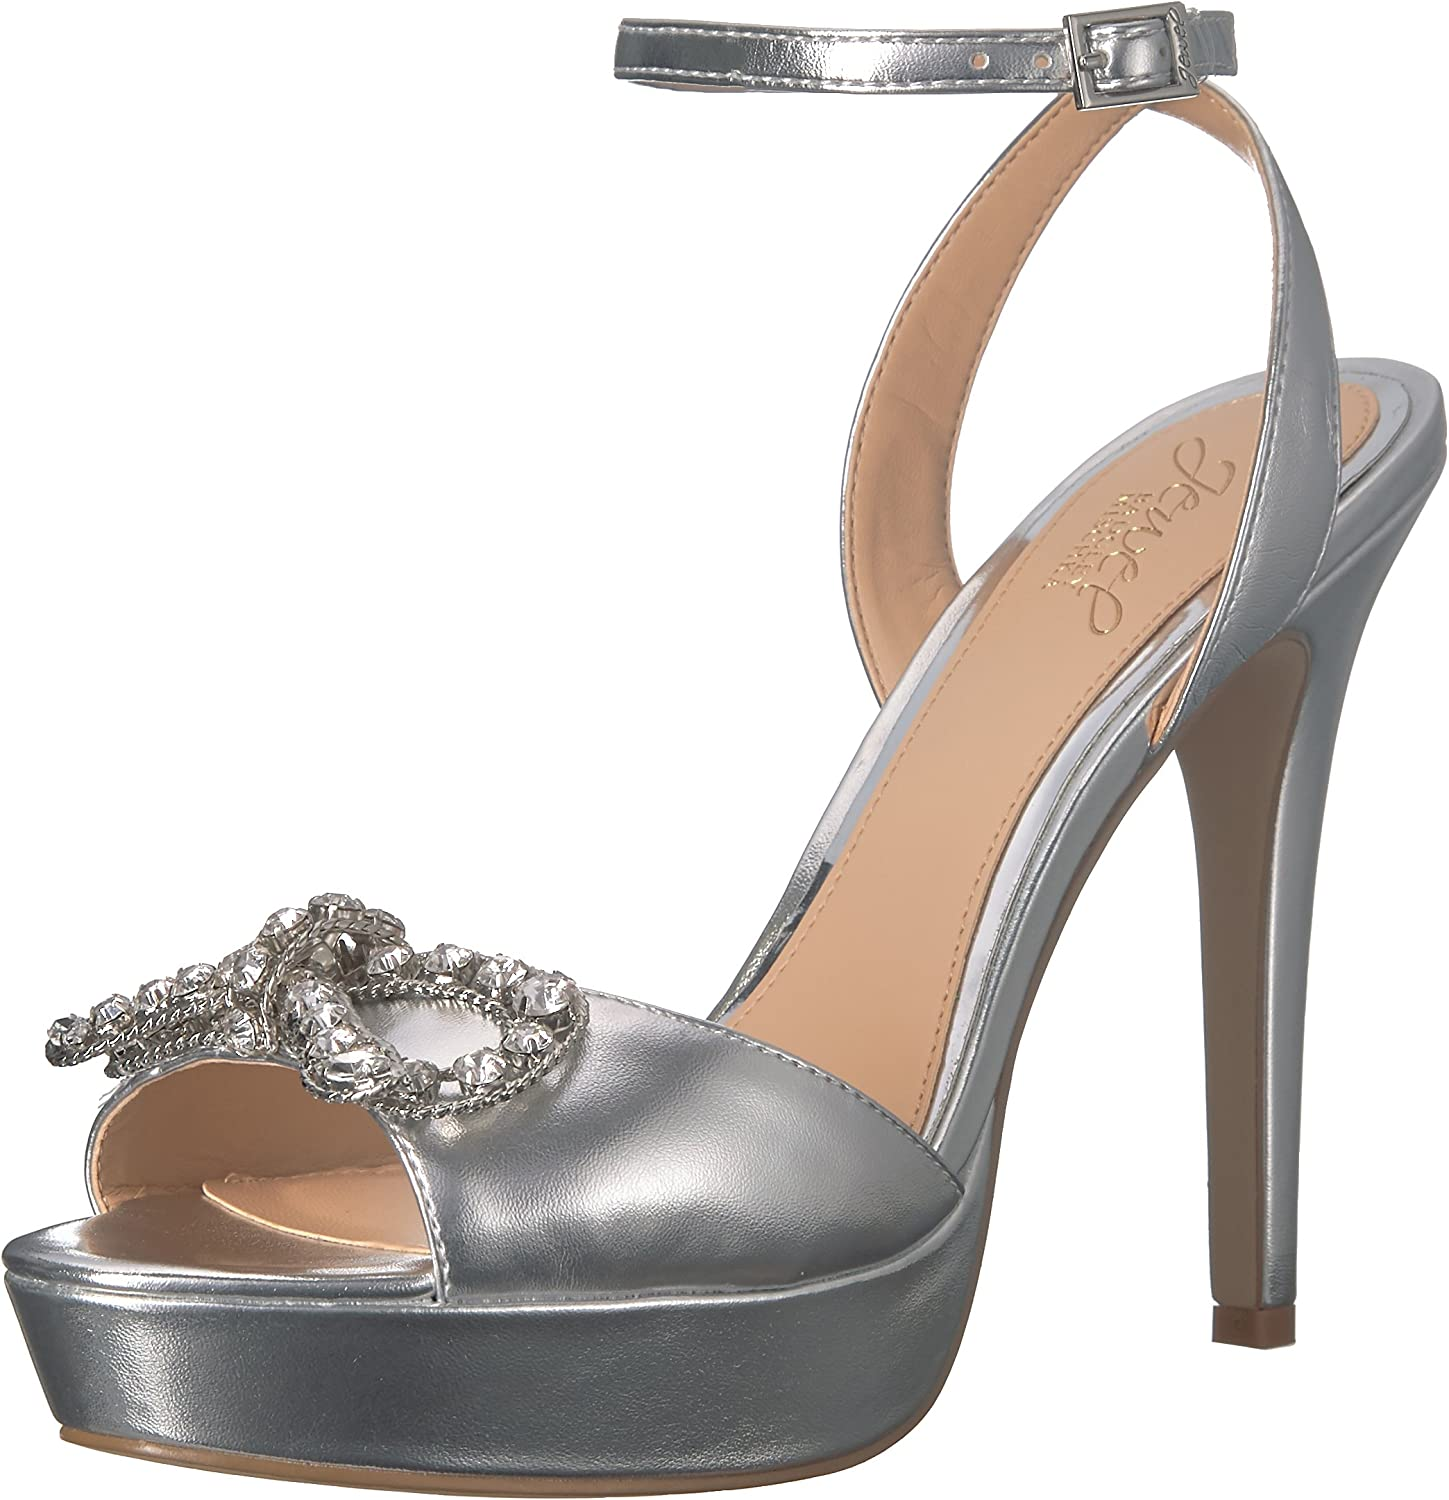 Badgley Mischka Womens Mildred Heeled Sandal